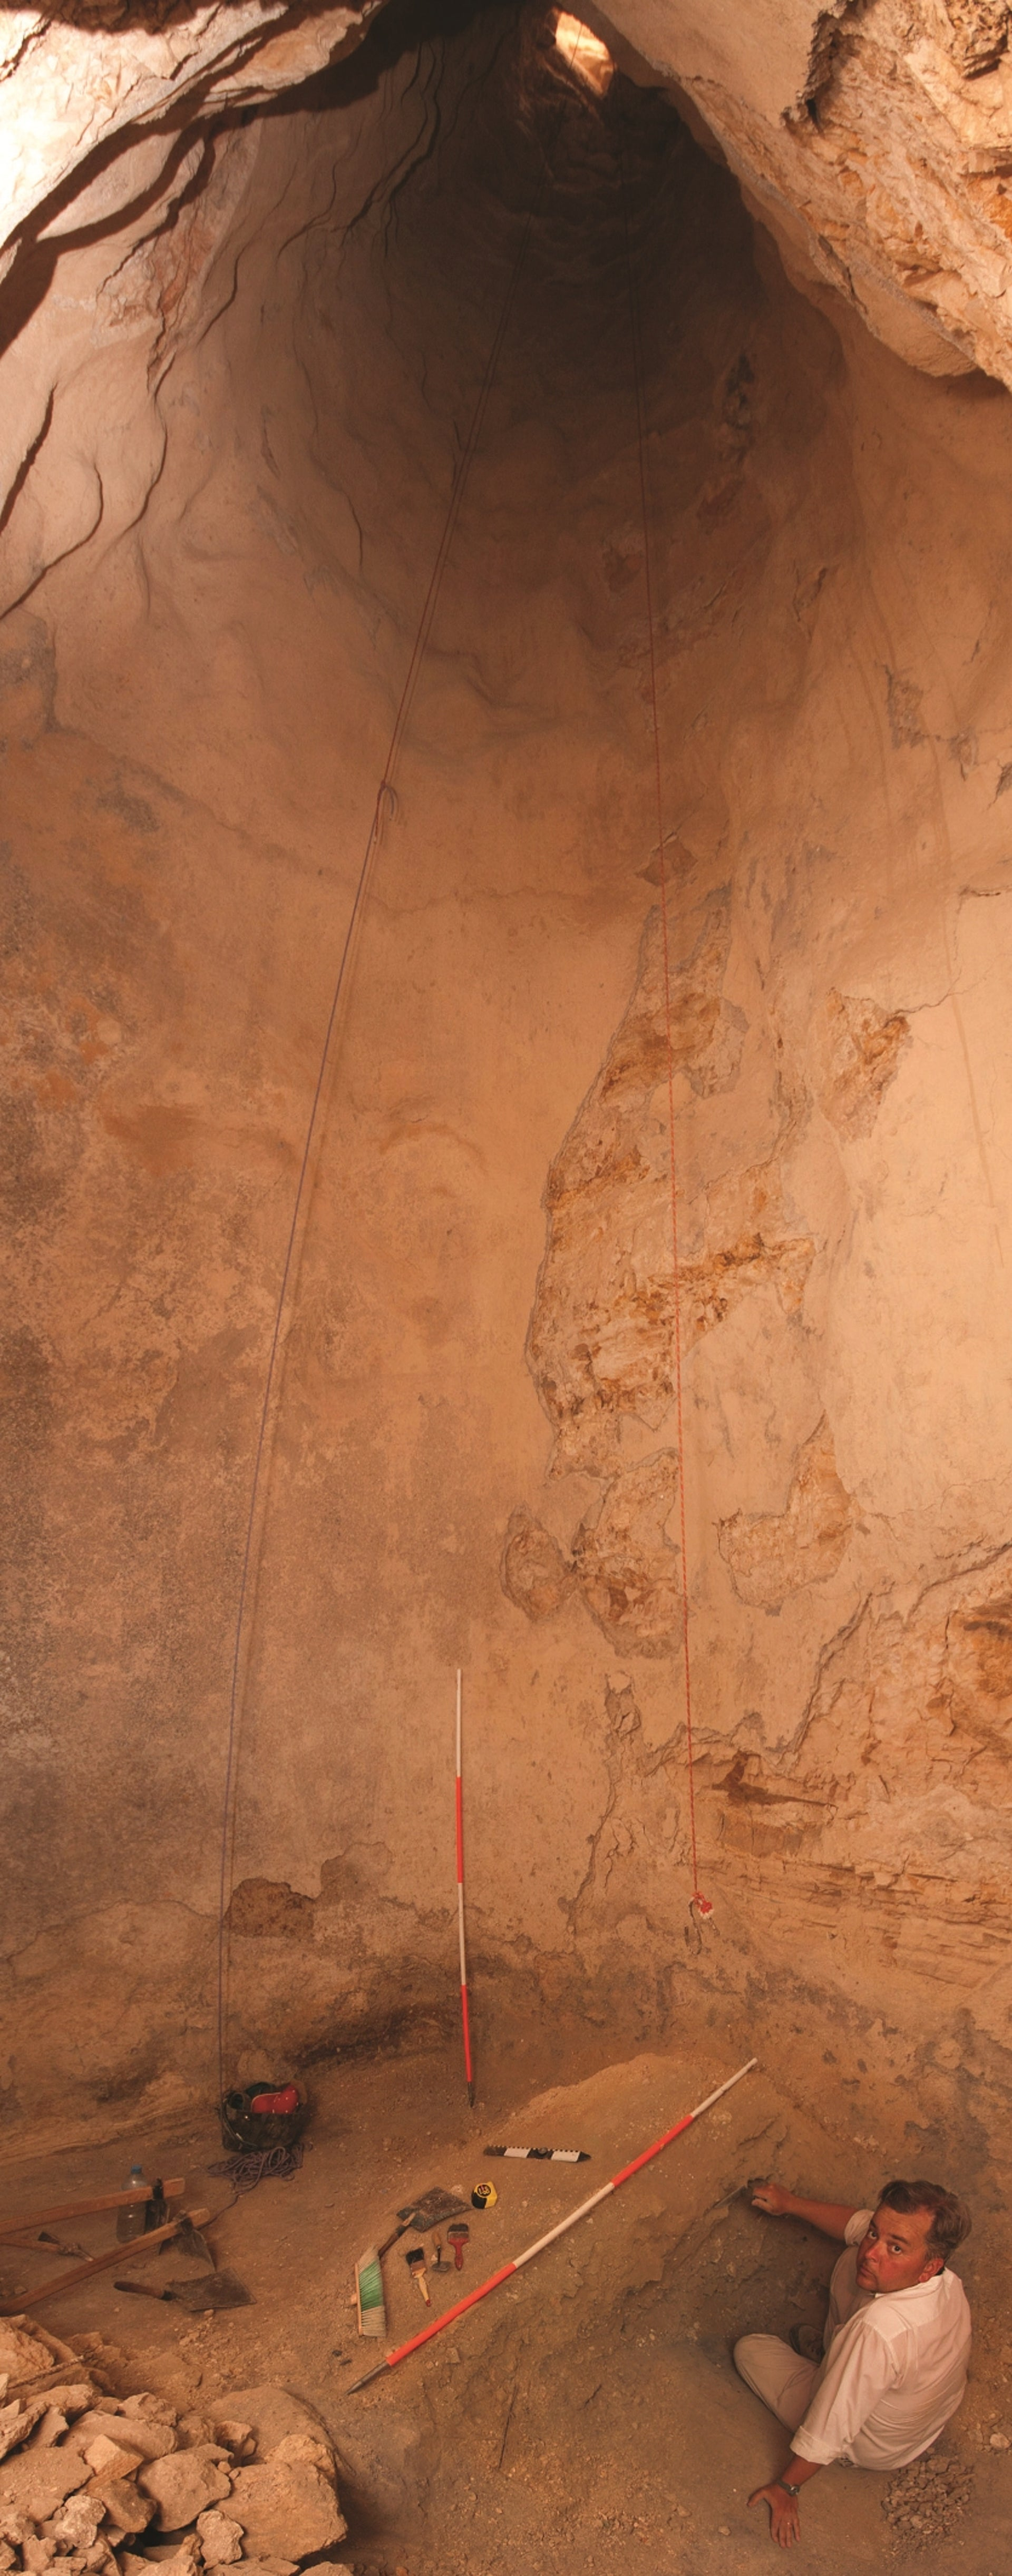 Gigantic cistern discovered at Machaerus, King Herod´s only palace outside modern Israel.